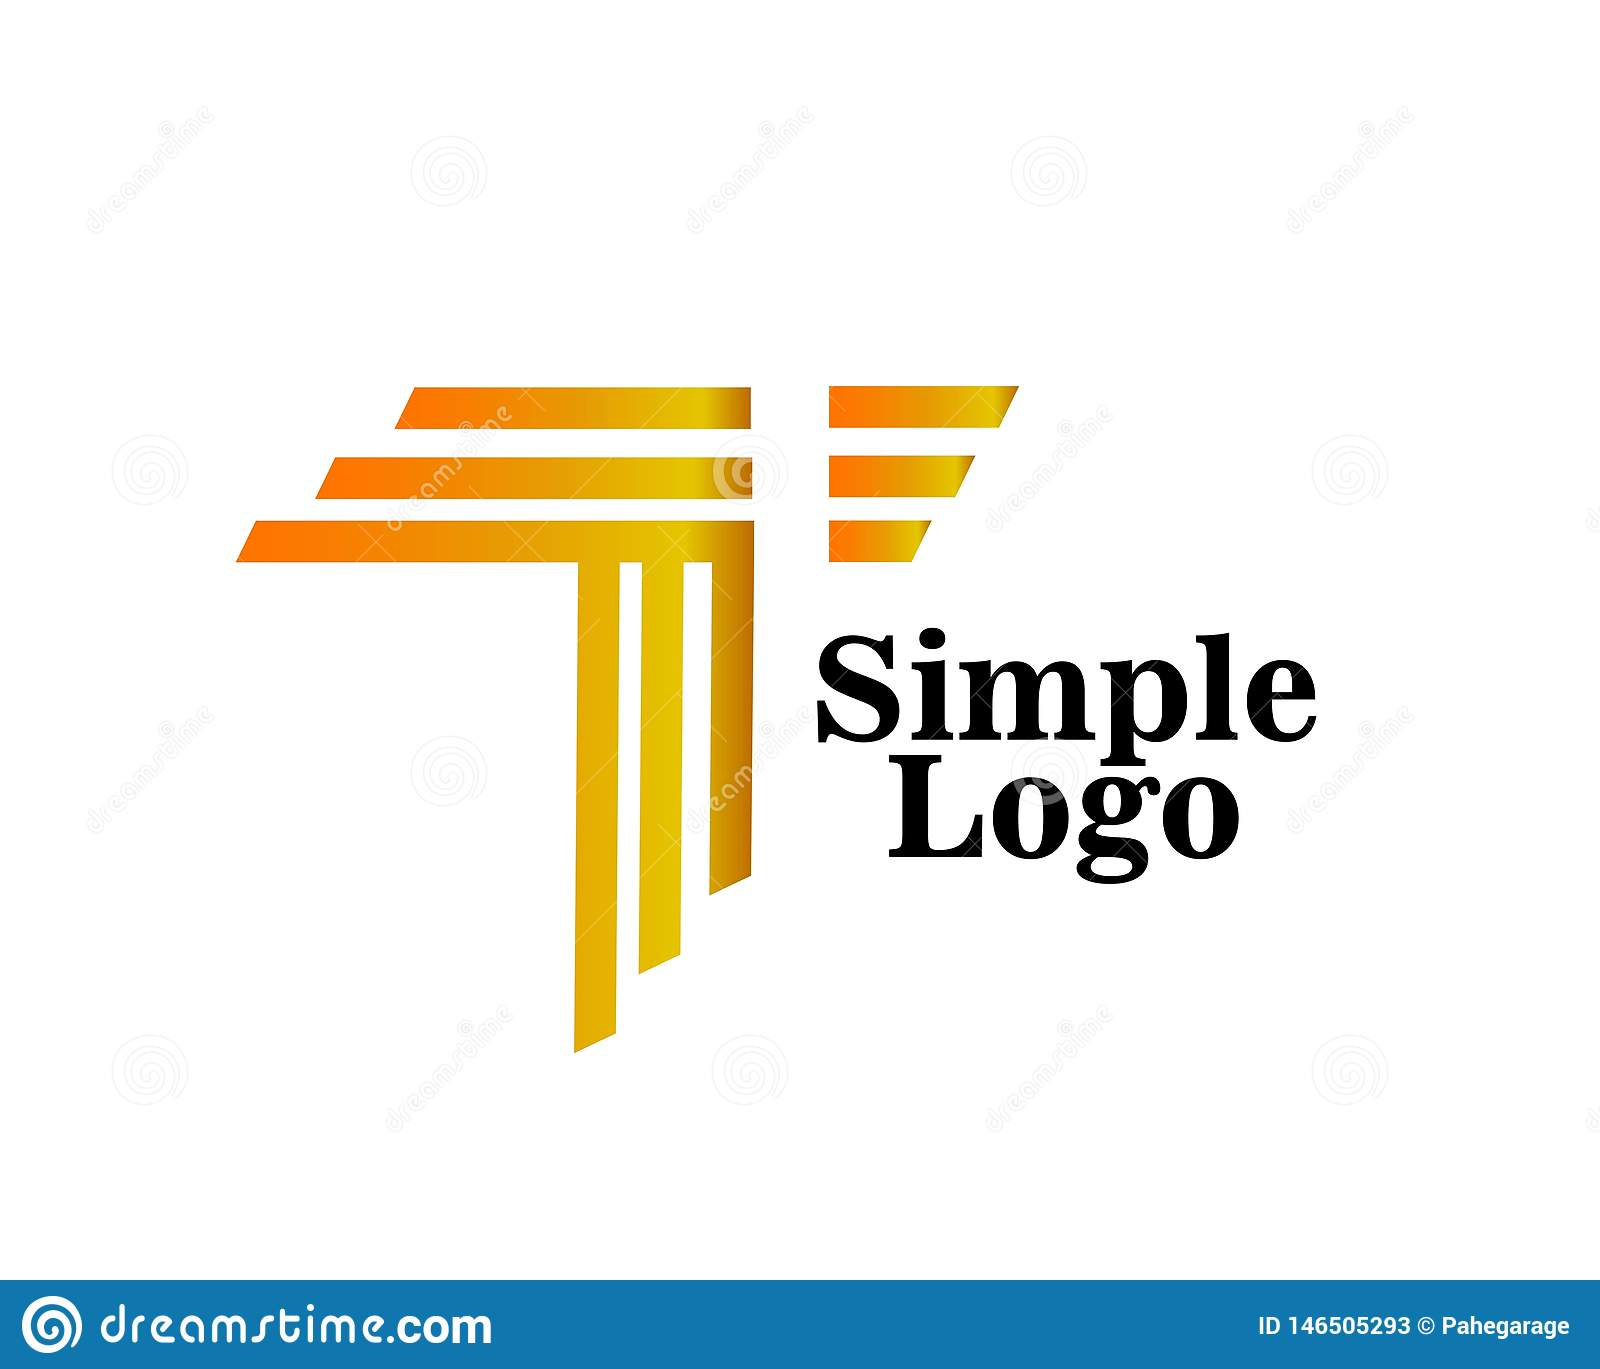 Simple logo abstract artistic icon